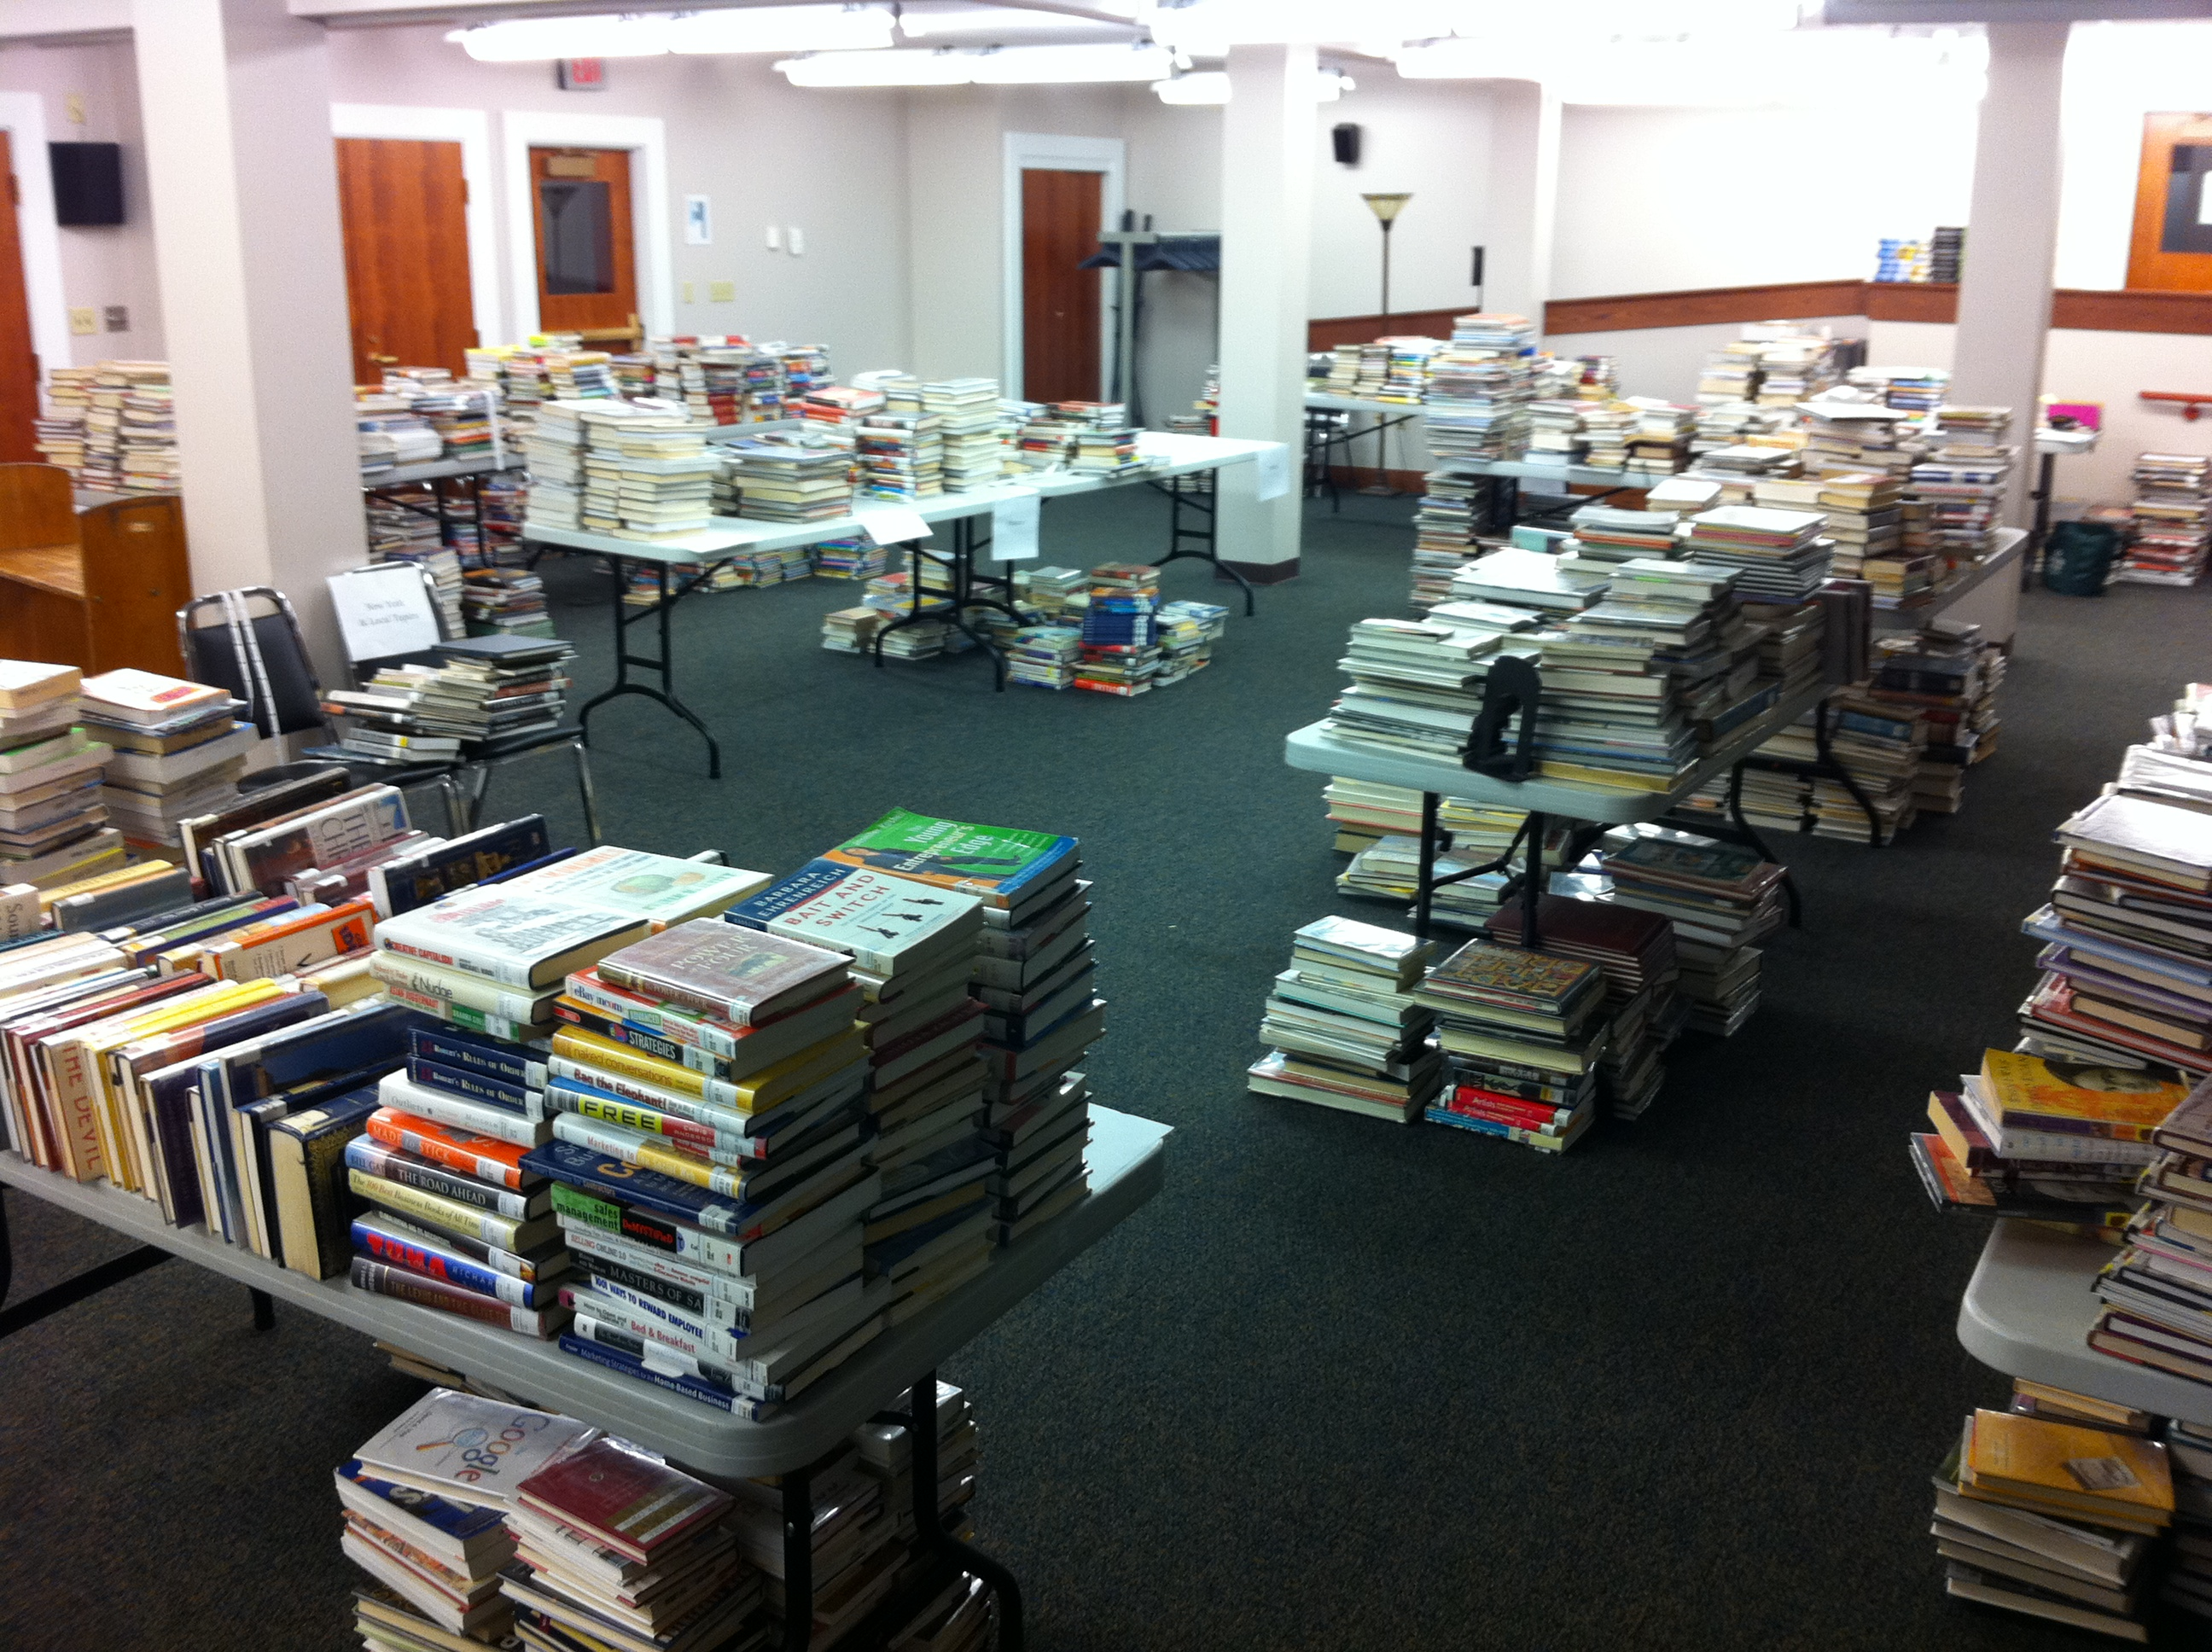 Stacks of nonfiction books waiting to be processed during the move to Dewey-free.